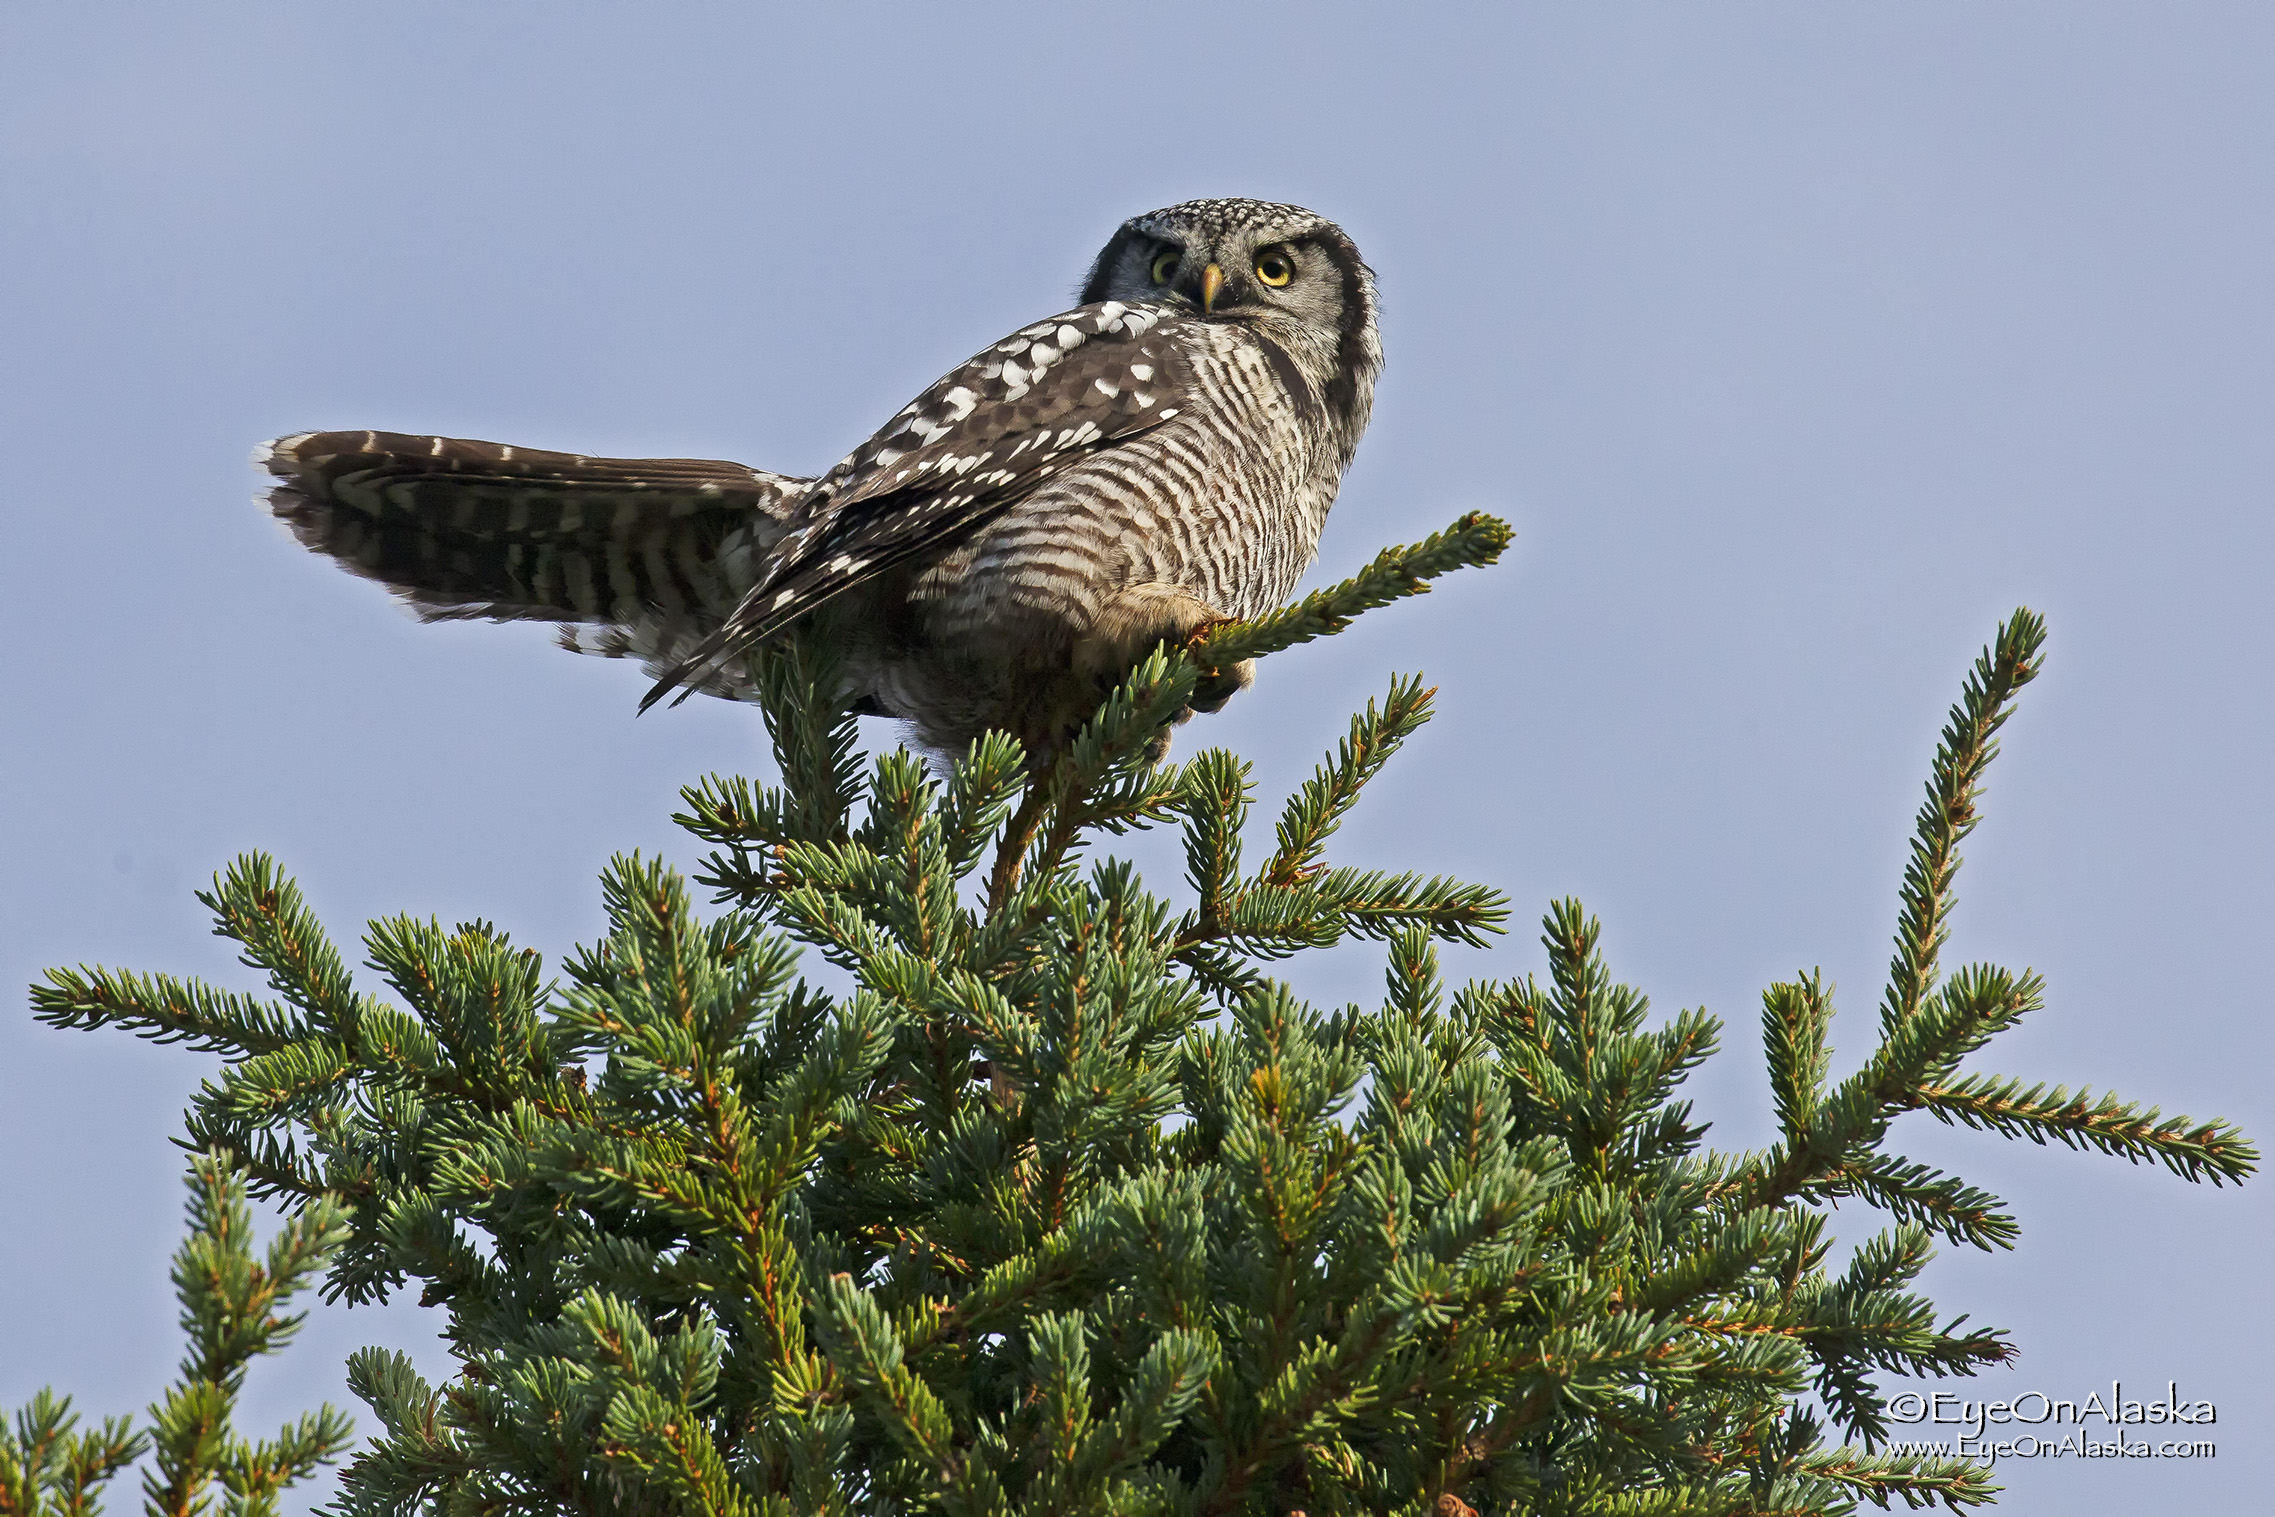 A Northern Hawk Owl decides to visit our campsite as we're sitting at the picnic table with friends having dinner.